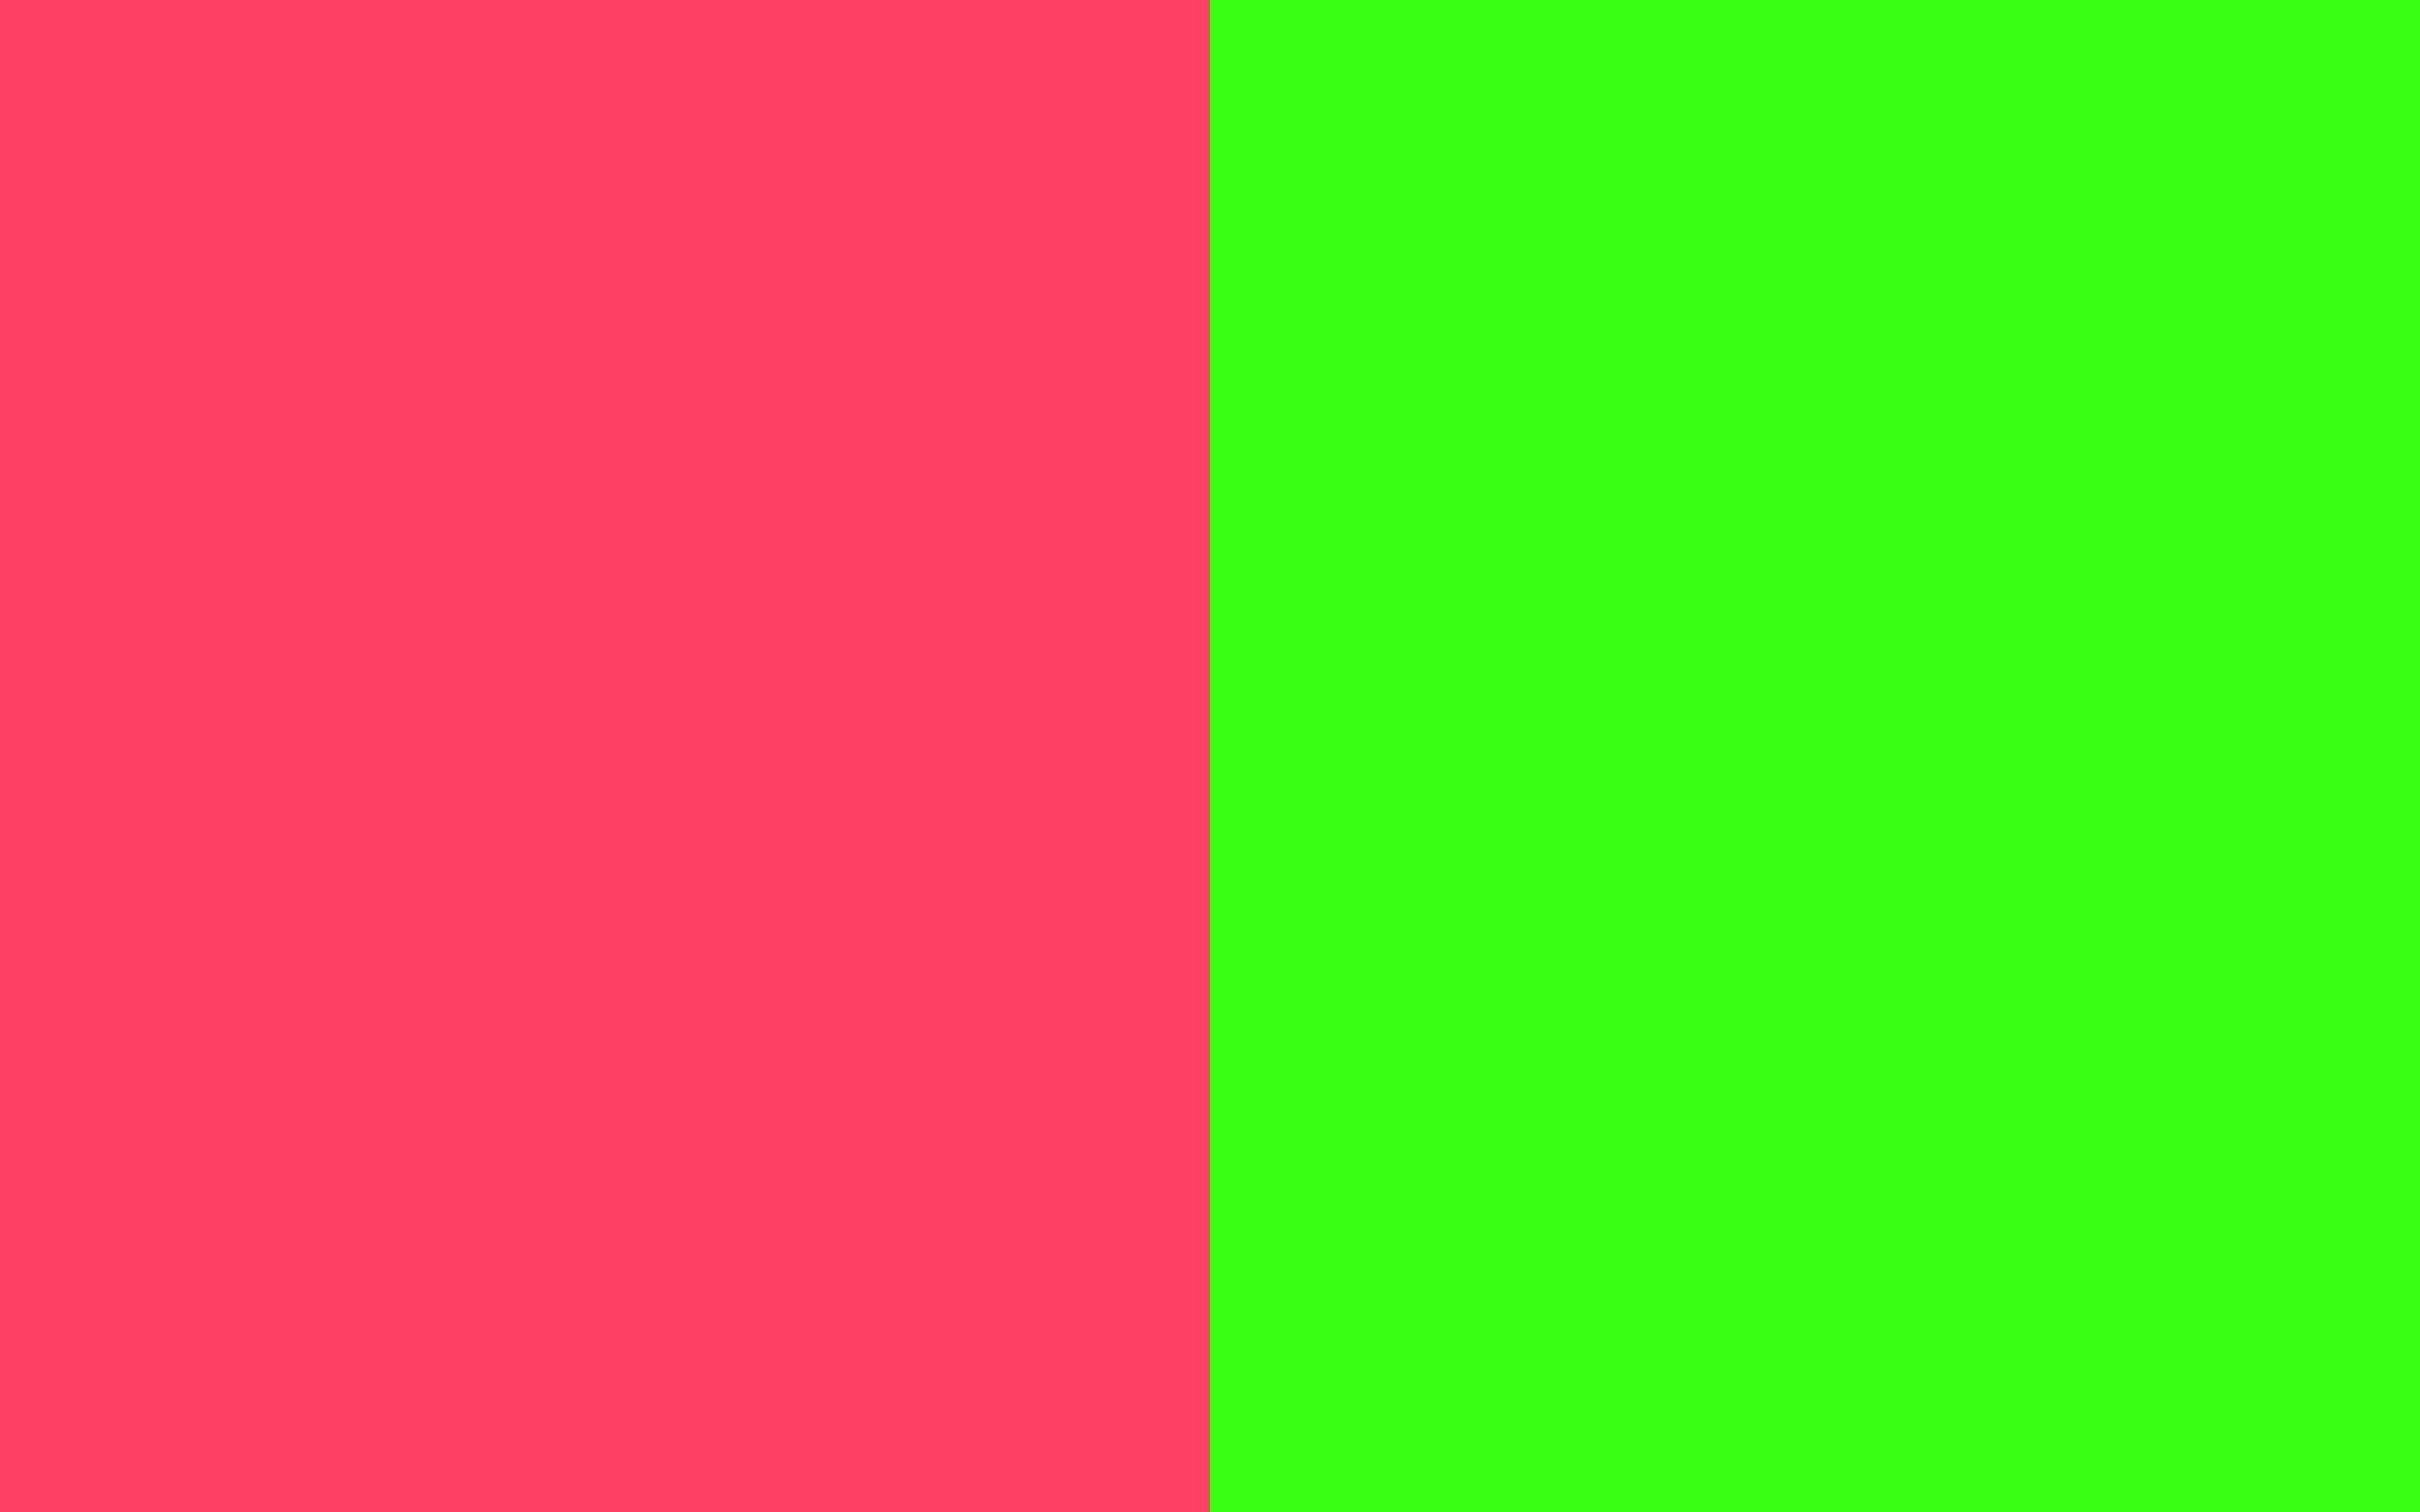 2560×1600-neon-fuchsia-neon-green-two-color-background.